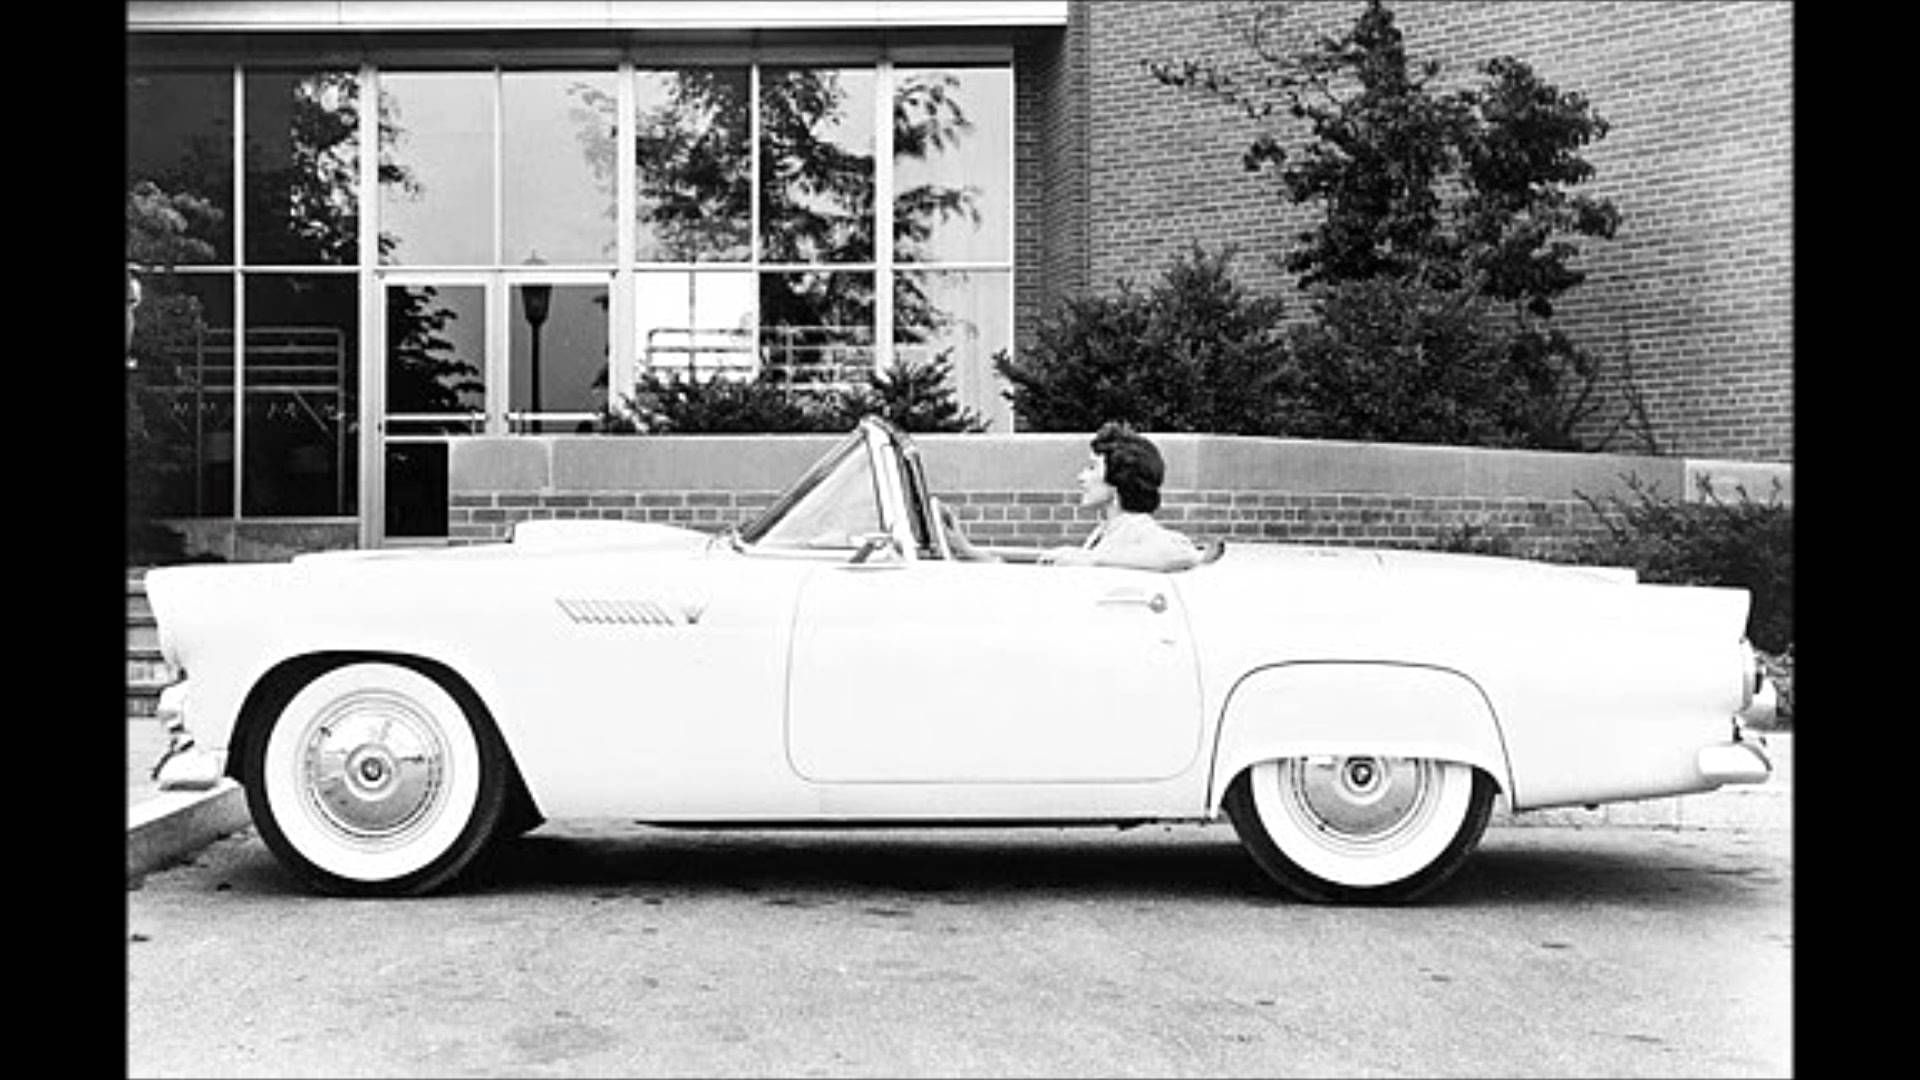 We're celebrating 60 years of the Ford Thunderbird this